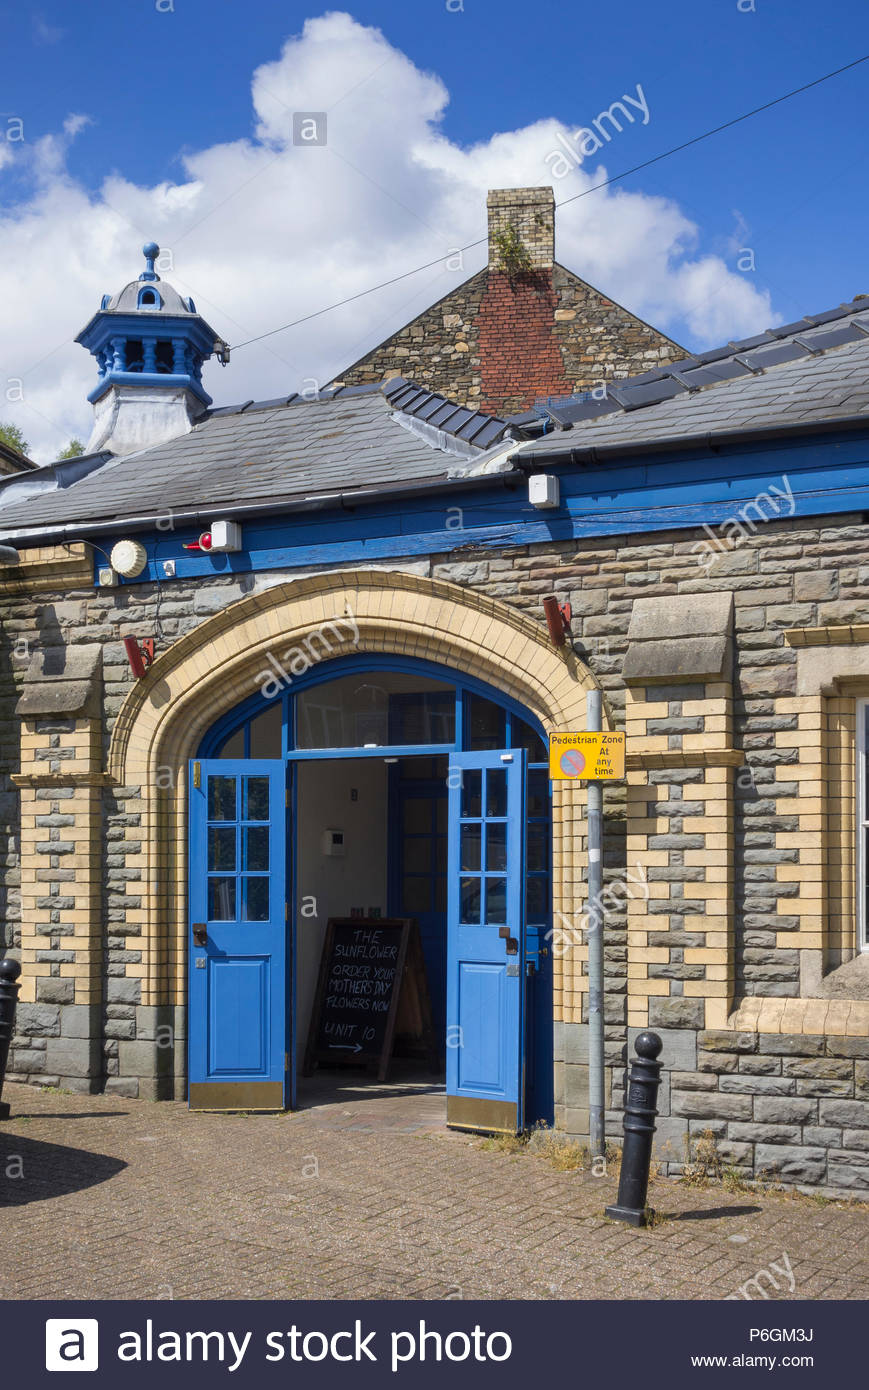 Entrance to Pontypool Market Hall, a Grade II listed Victorian building in Torfaen, Gwent, Wales, UK. - Stock Image